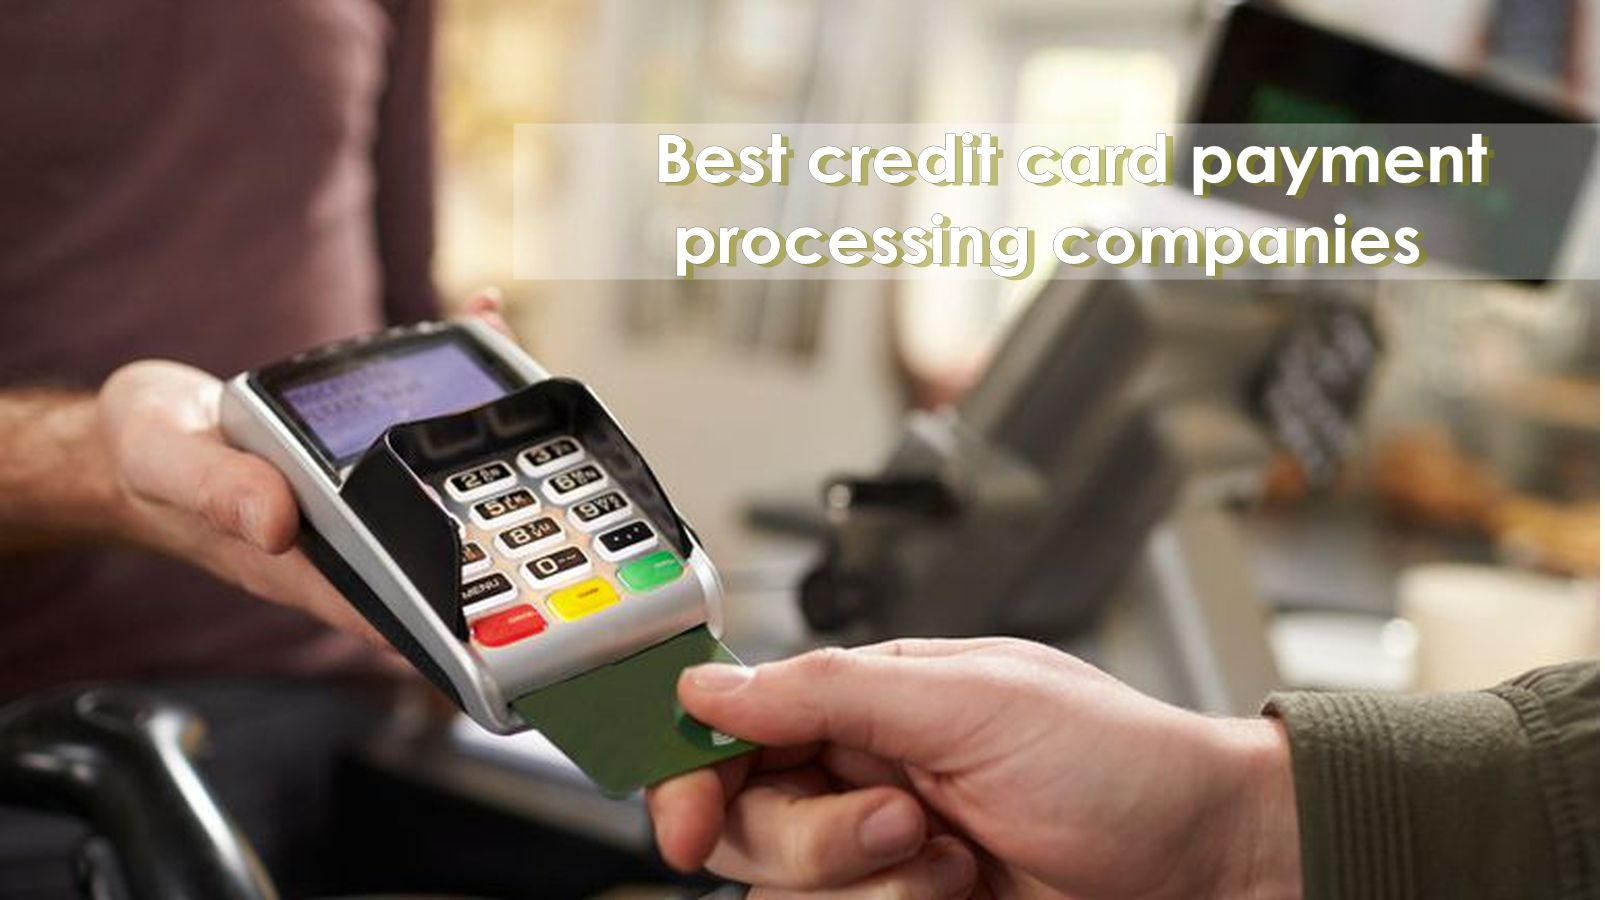 With Cube Reviews Offering The Best Credit Card Processing Reviews You Are Relieved Of The Effort Required For The Same The Choice Will Yield Delightful Benef